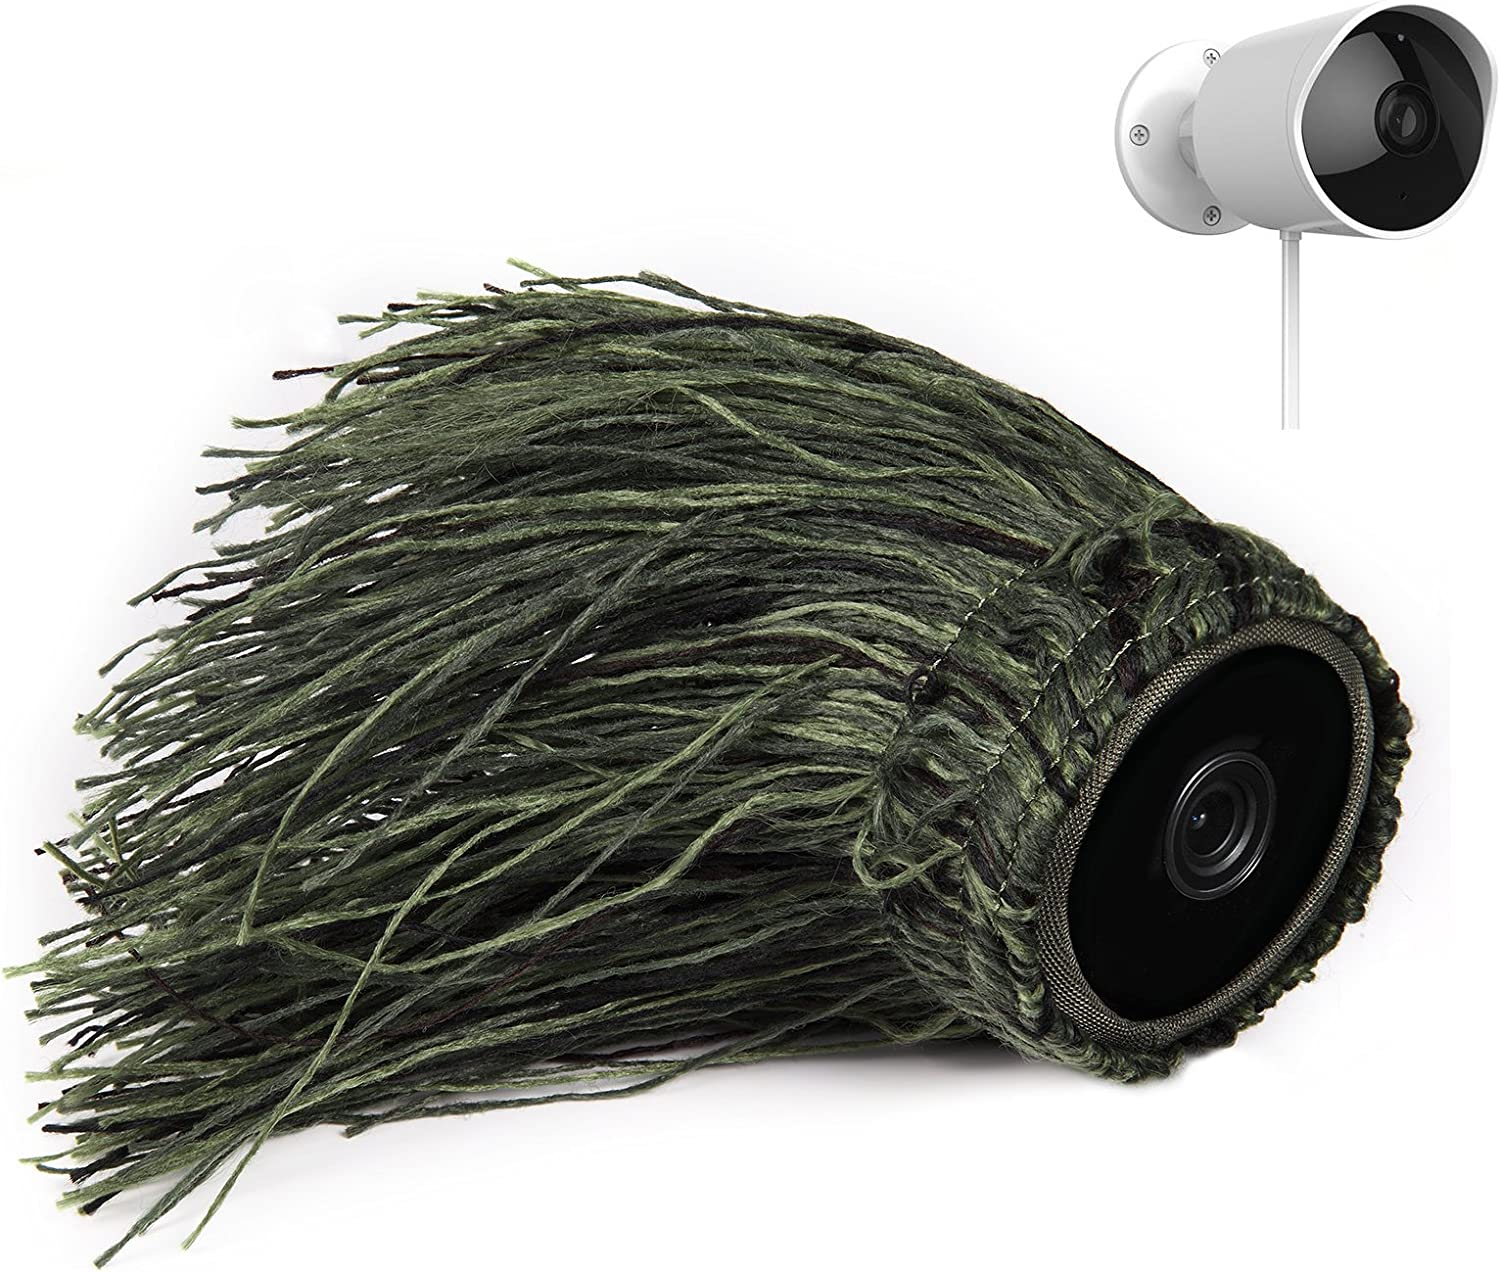 Ghillie Skin Compatible with YI Outdoor Security Camera— by Wasserstein (1 Pack)